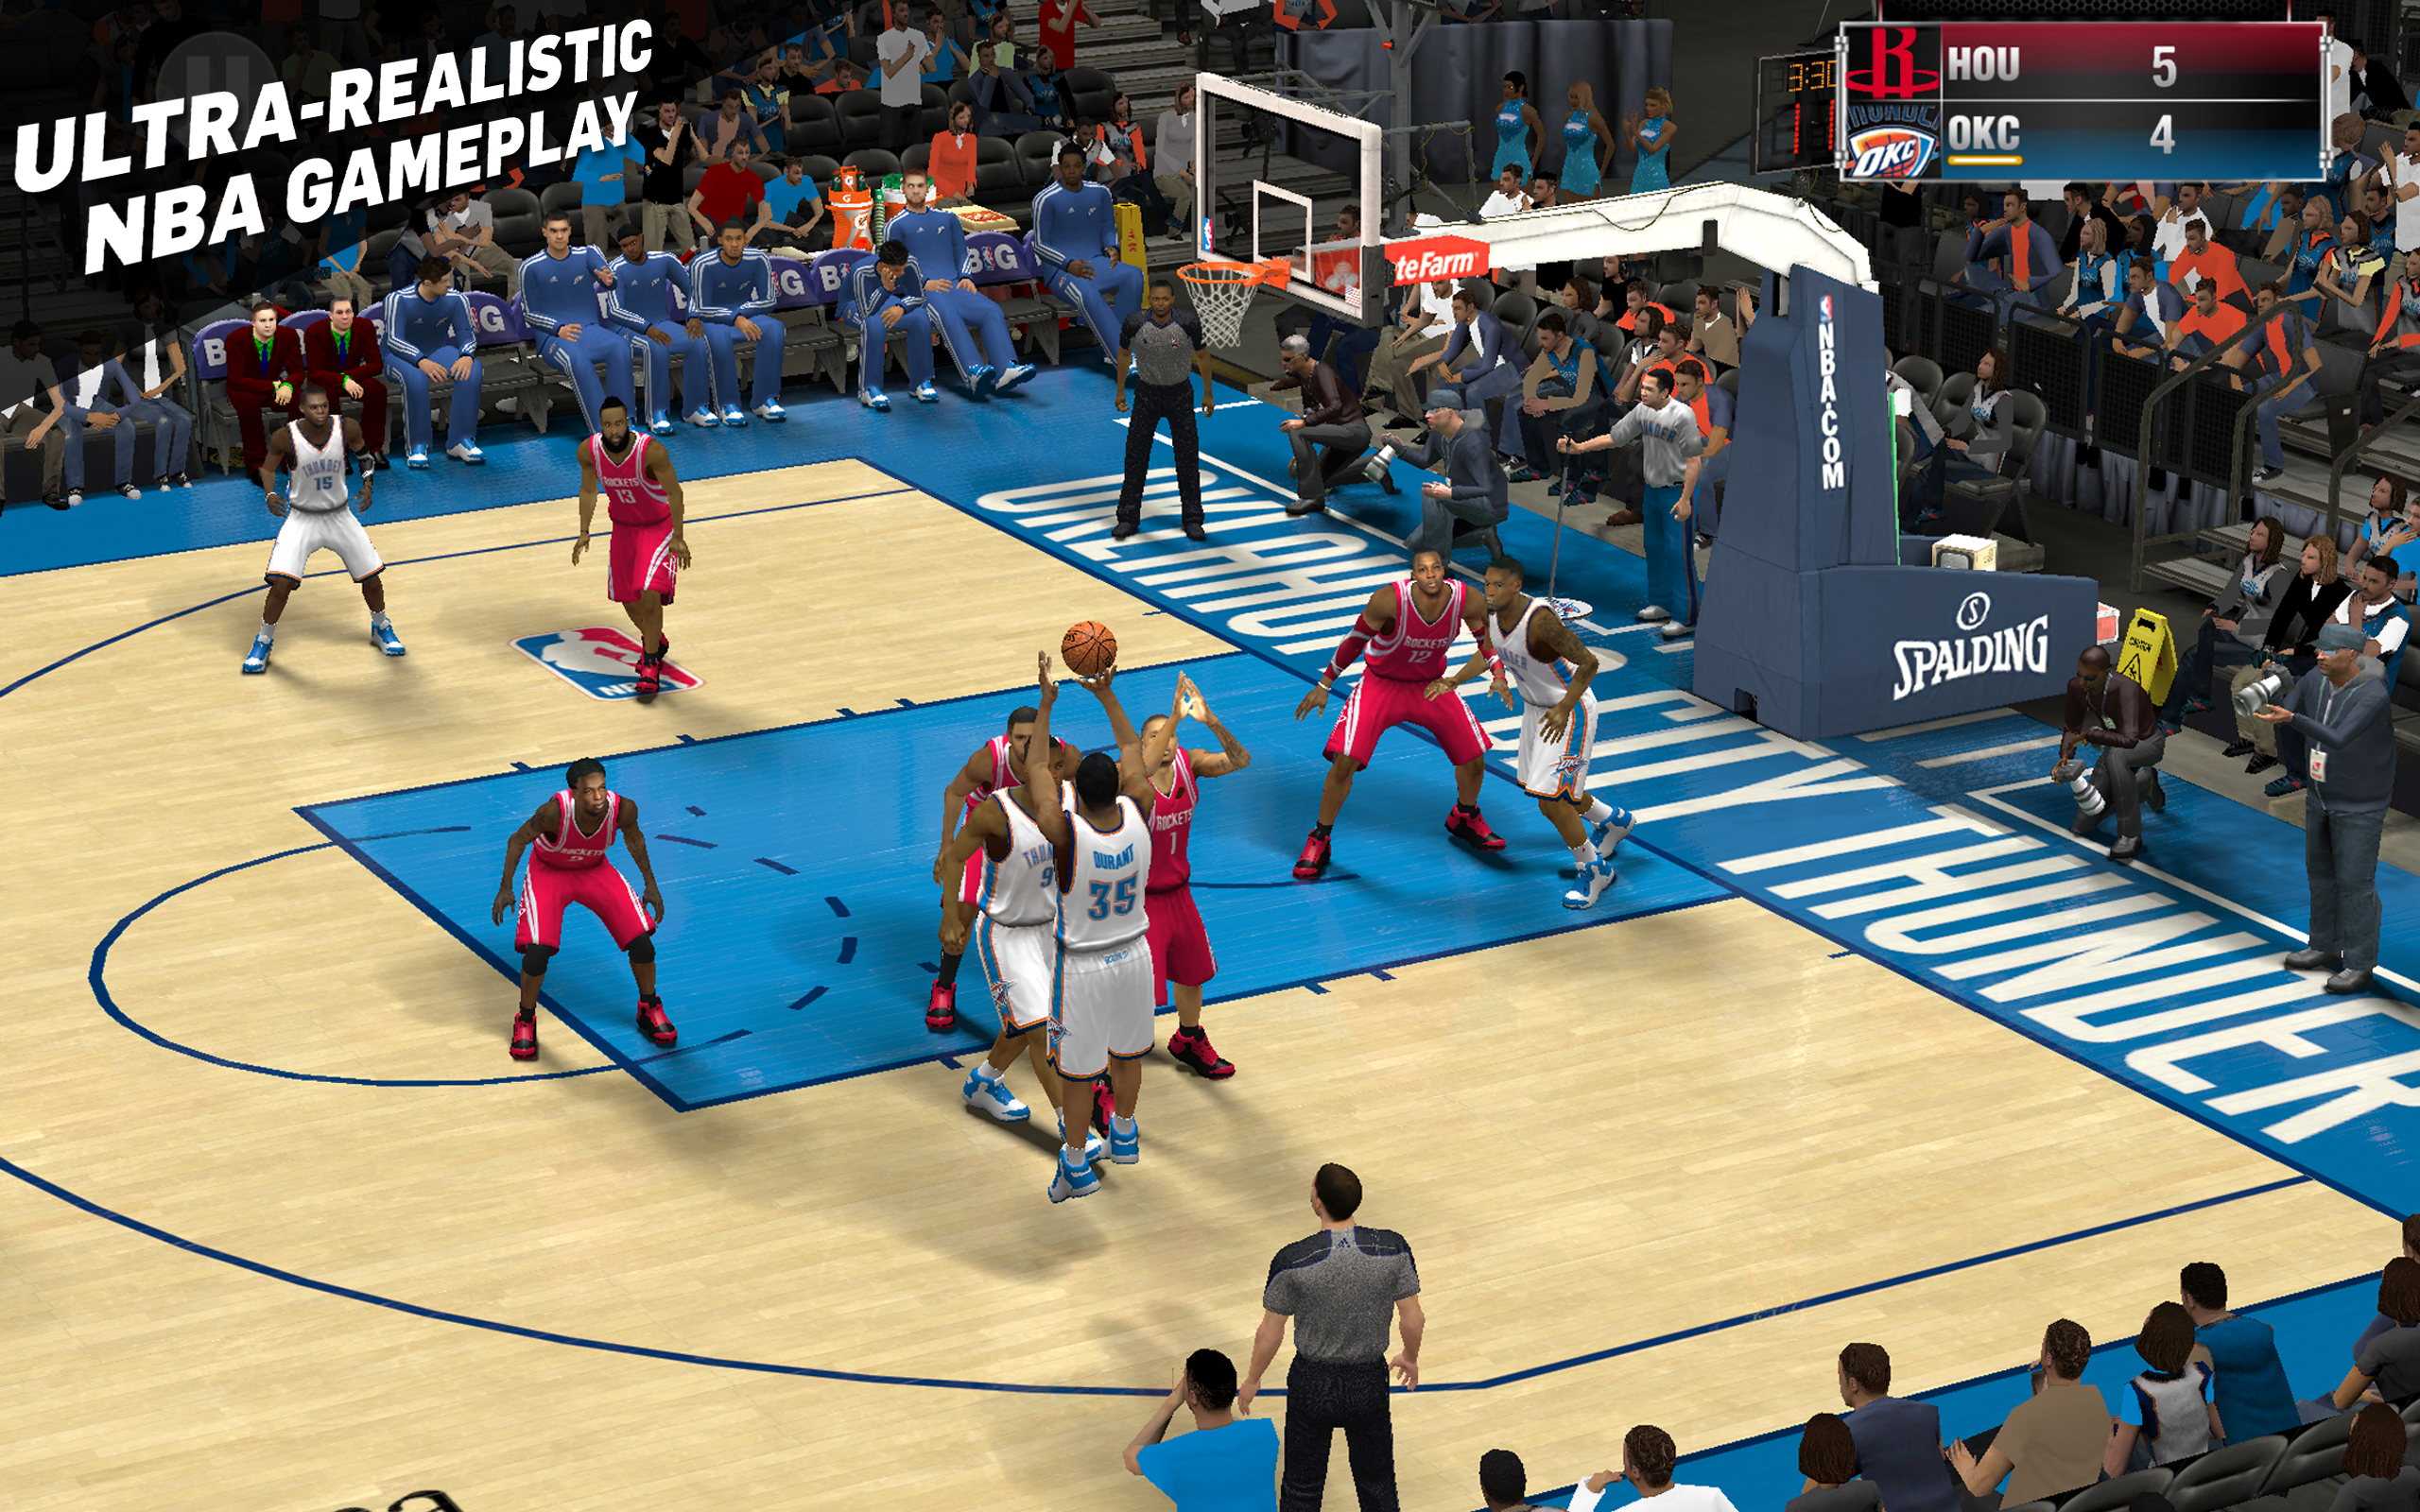 nba 2k14 apk and data free download